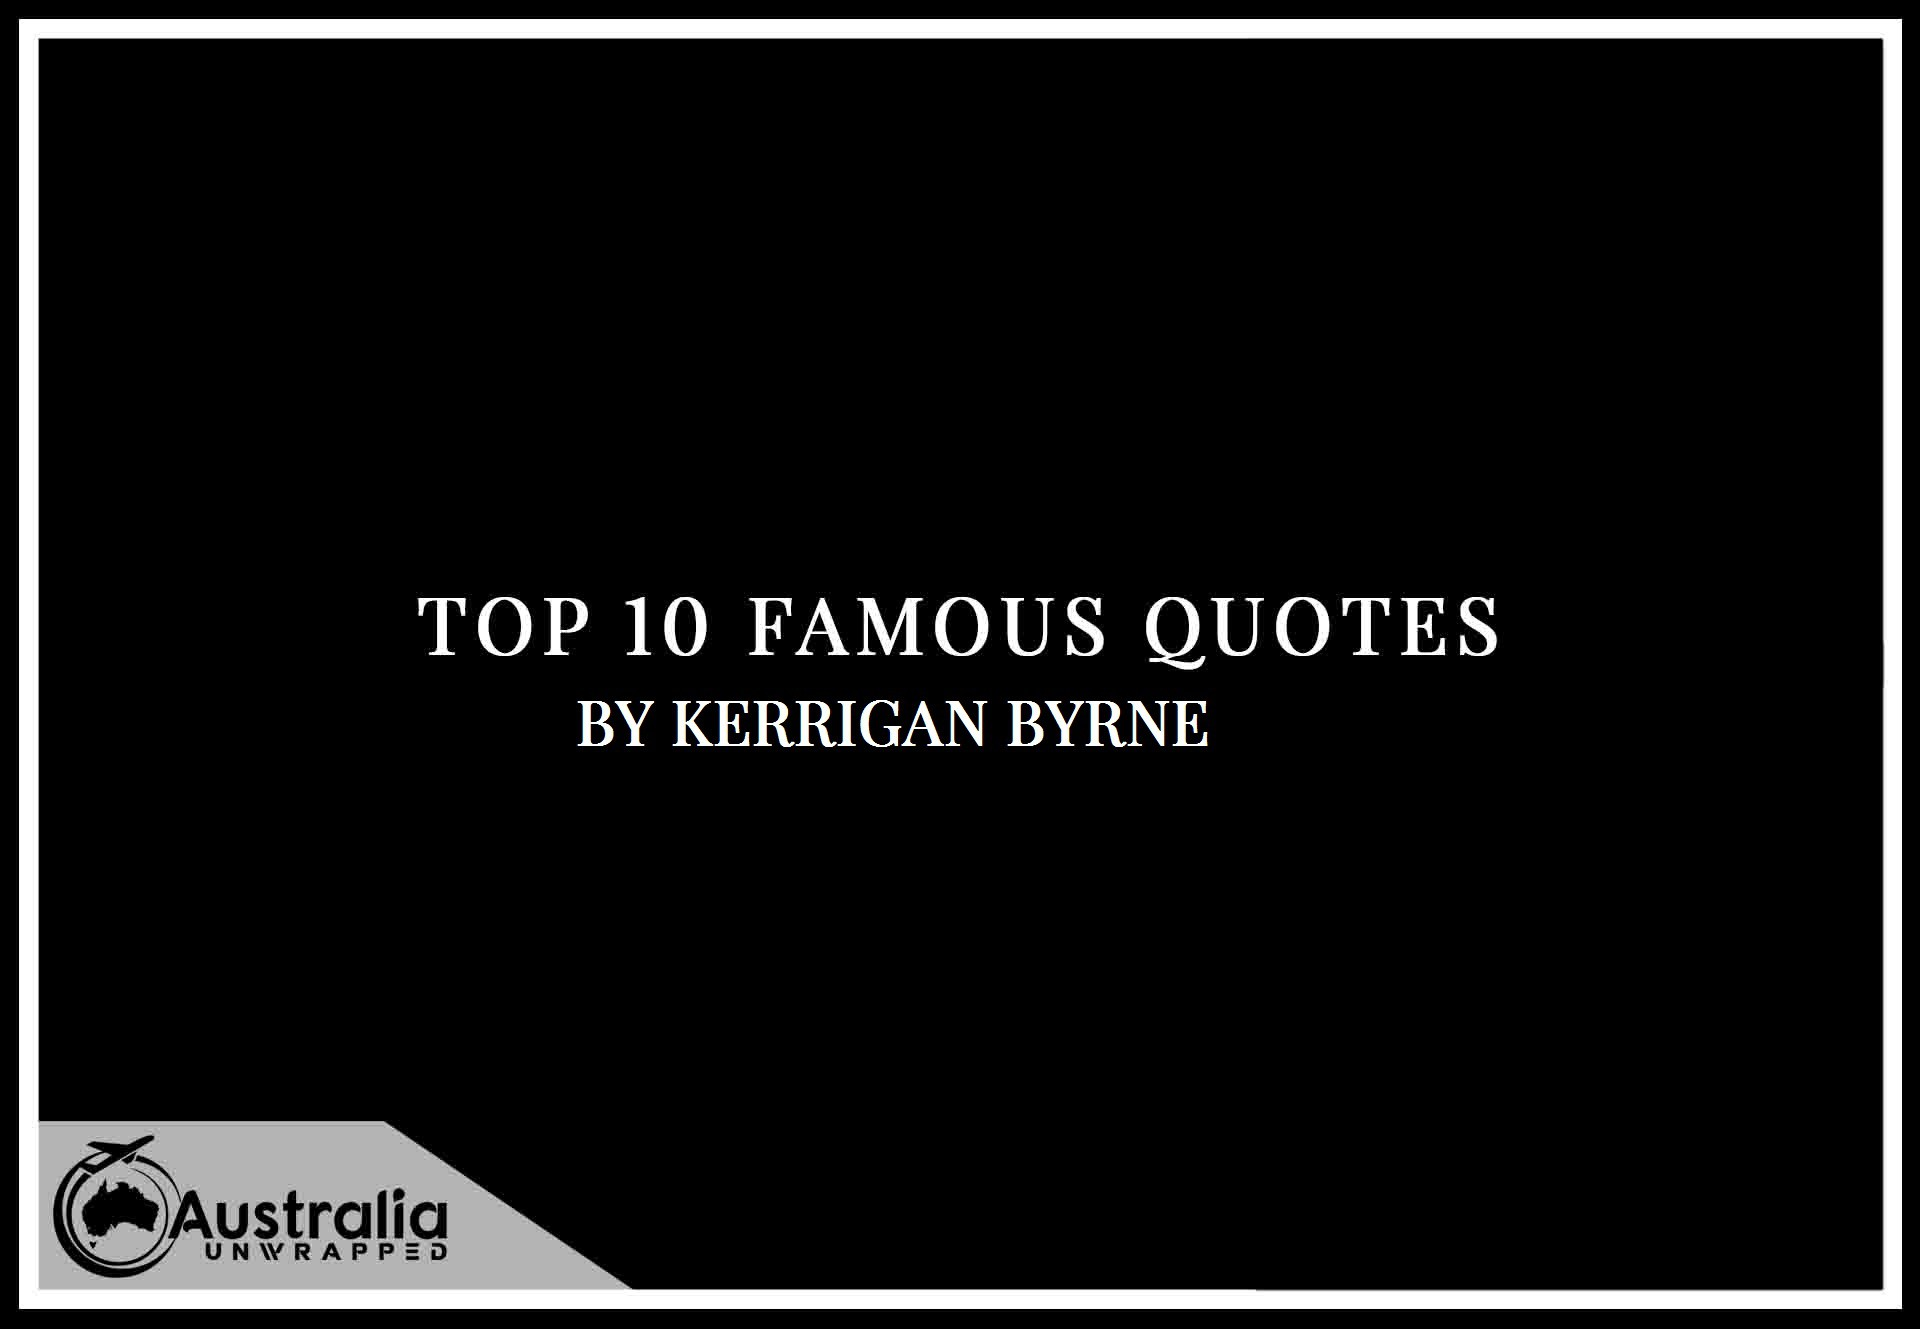 Kerrigan Byrne's Top 10 Popular and Famous Quotes